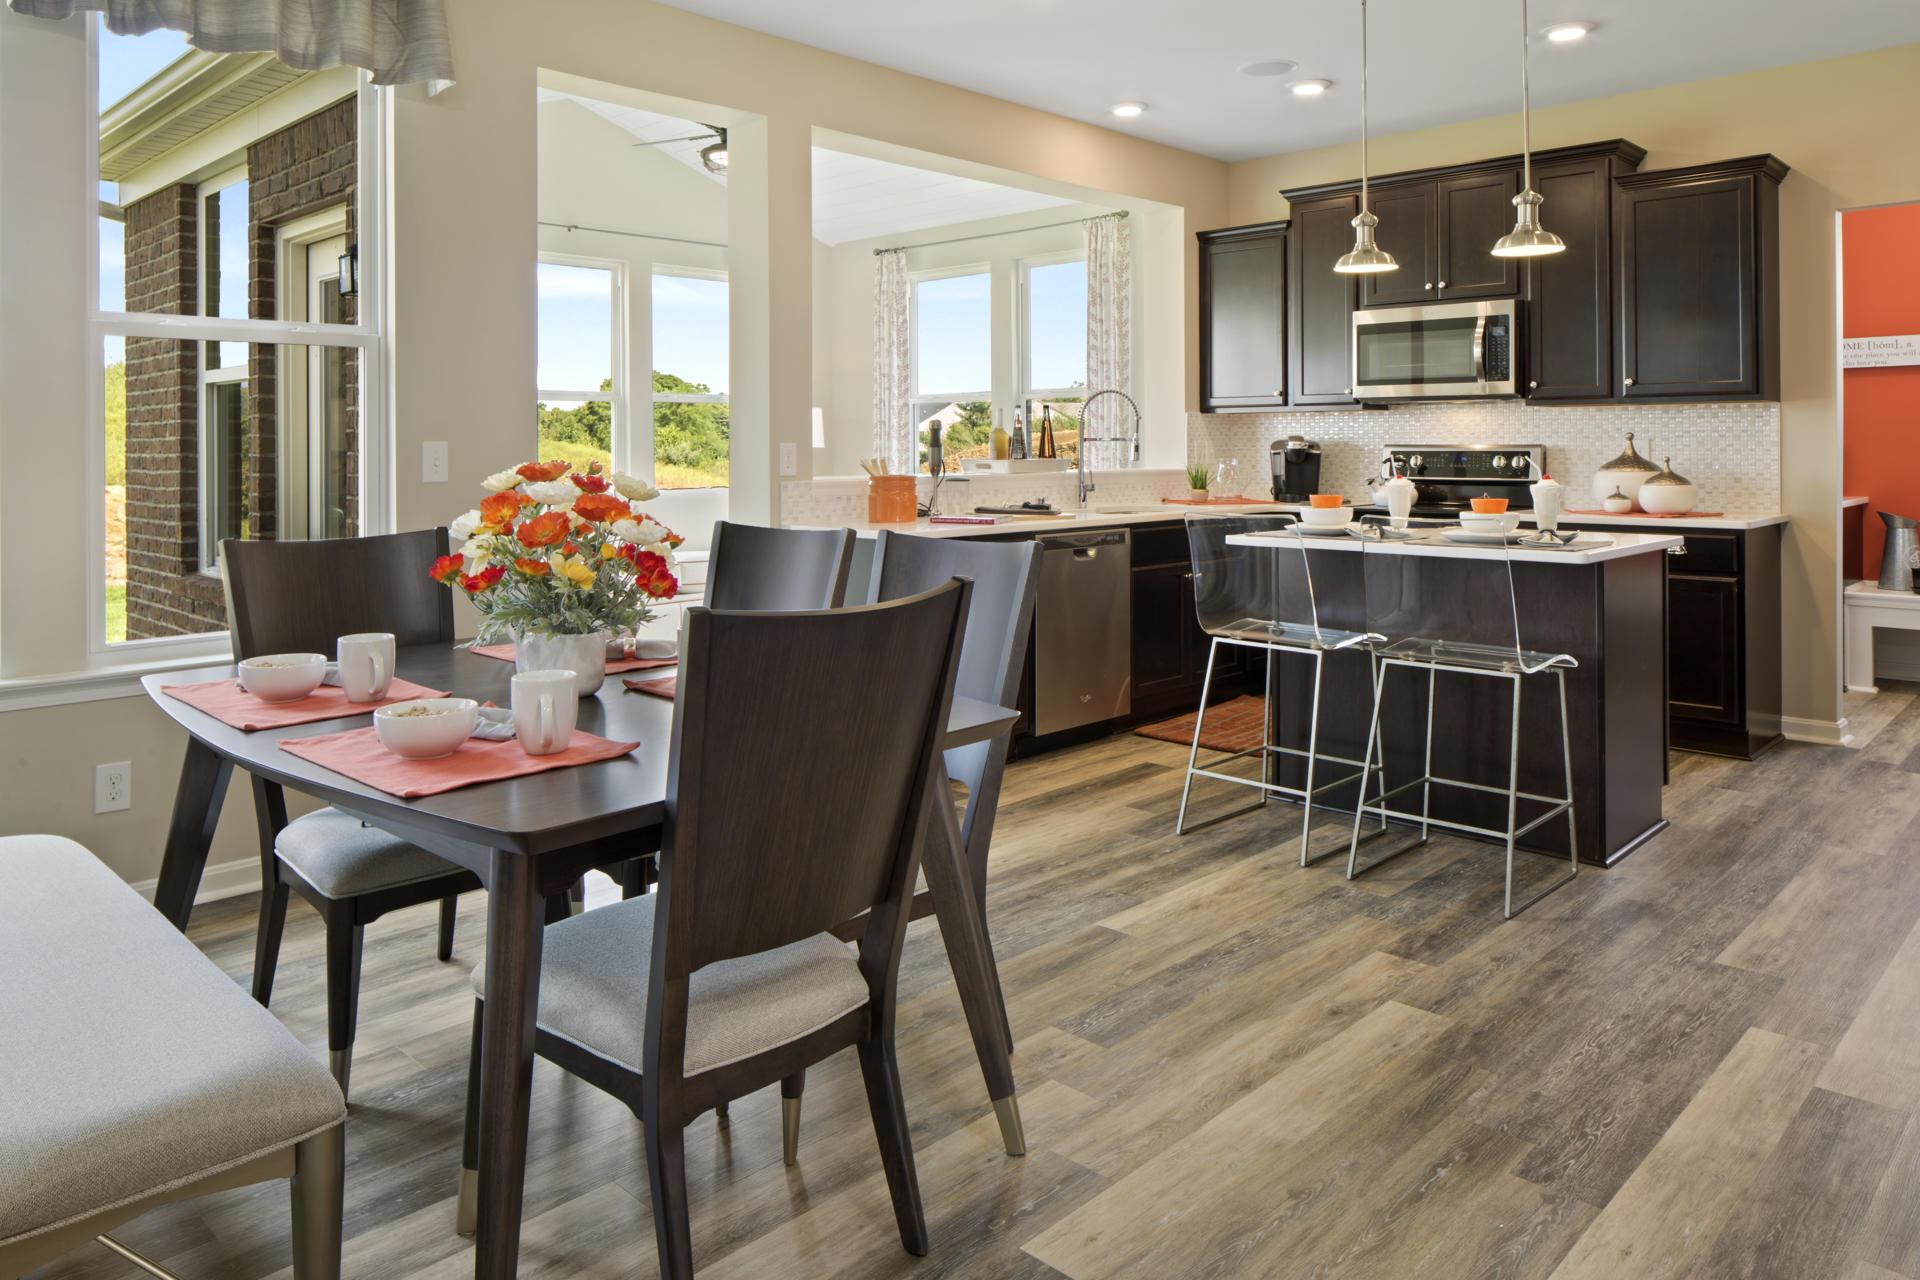 Kitchen featured in the Quentin By Drees Homes in Cincinnati, KY